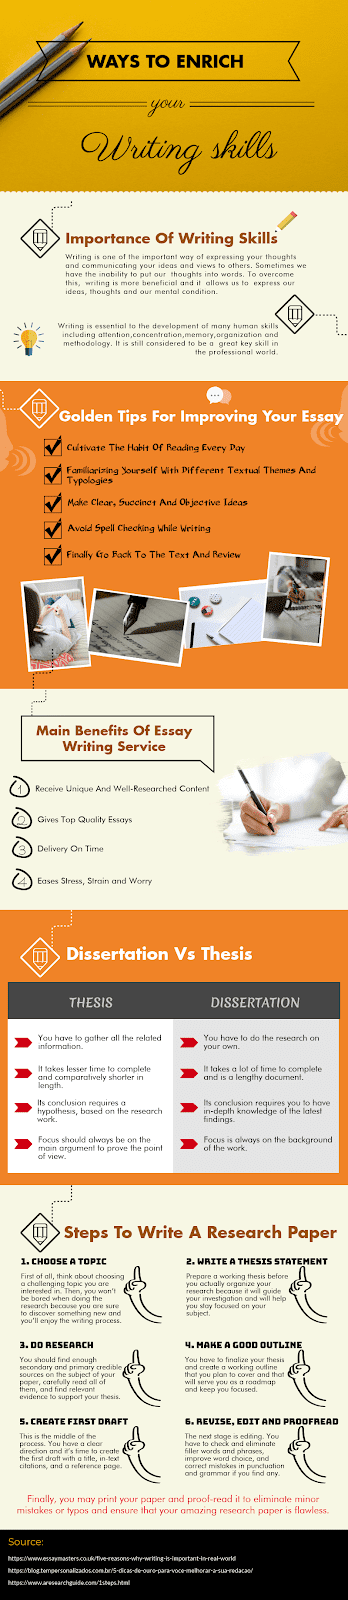 How To Write Your First Thesis?